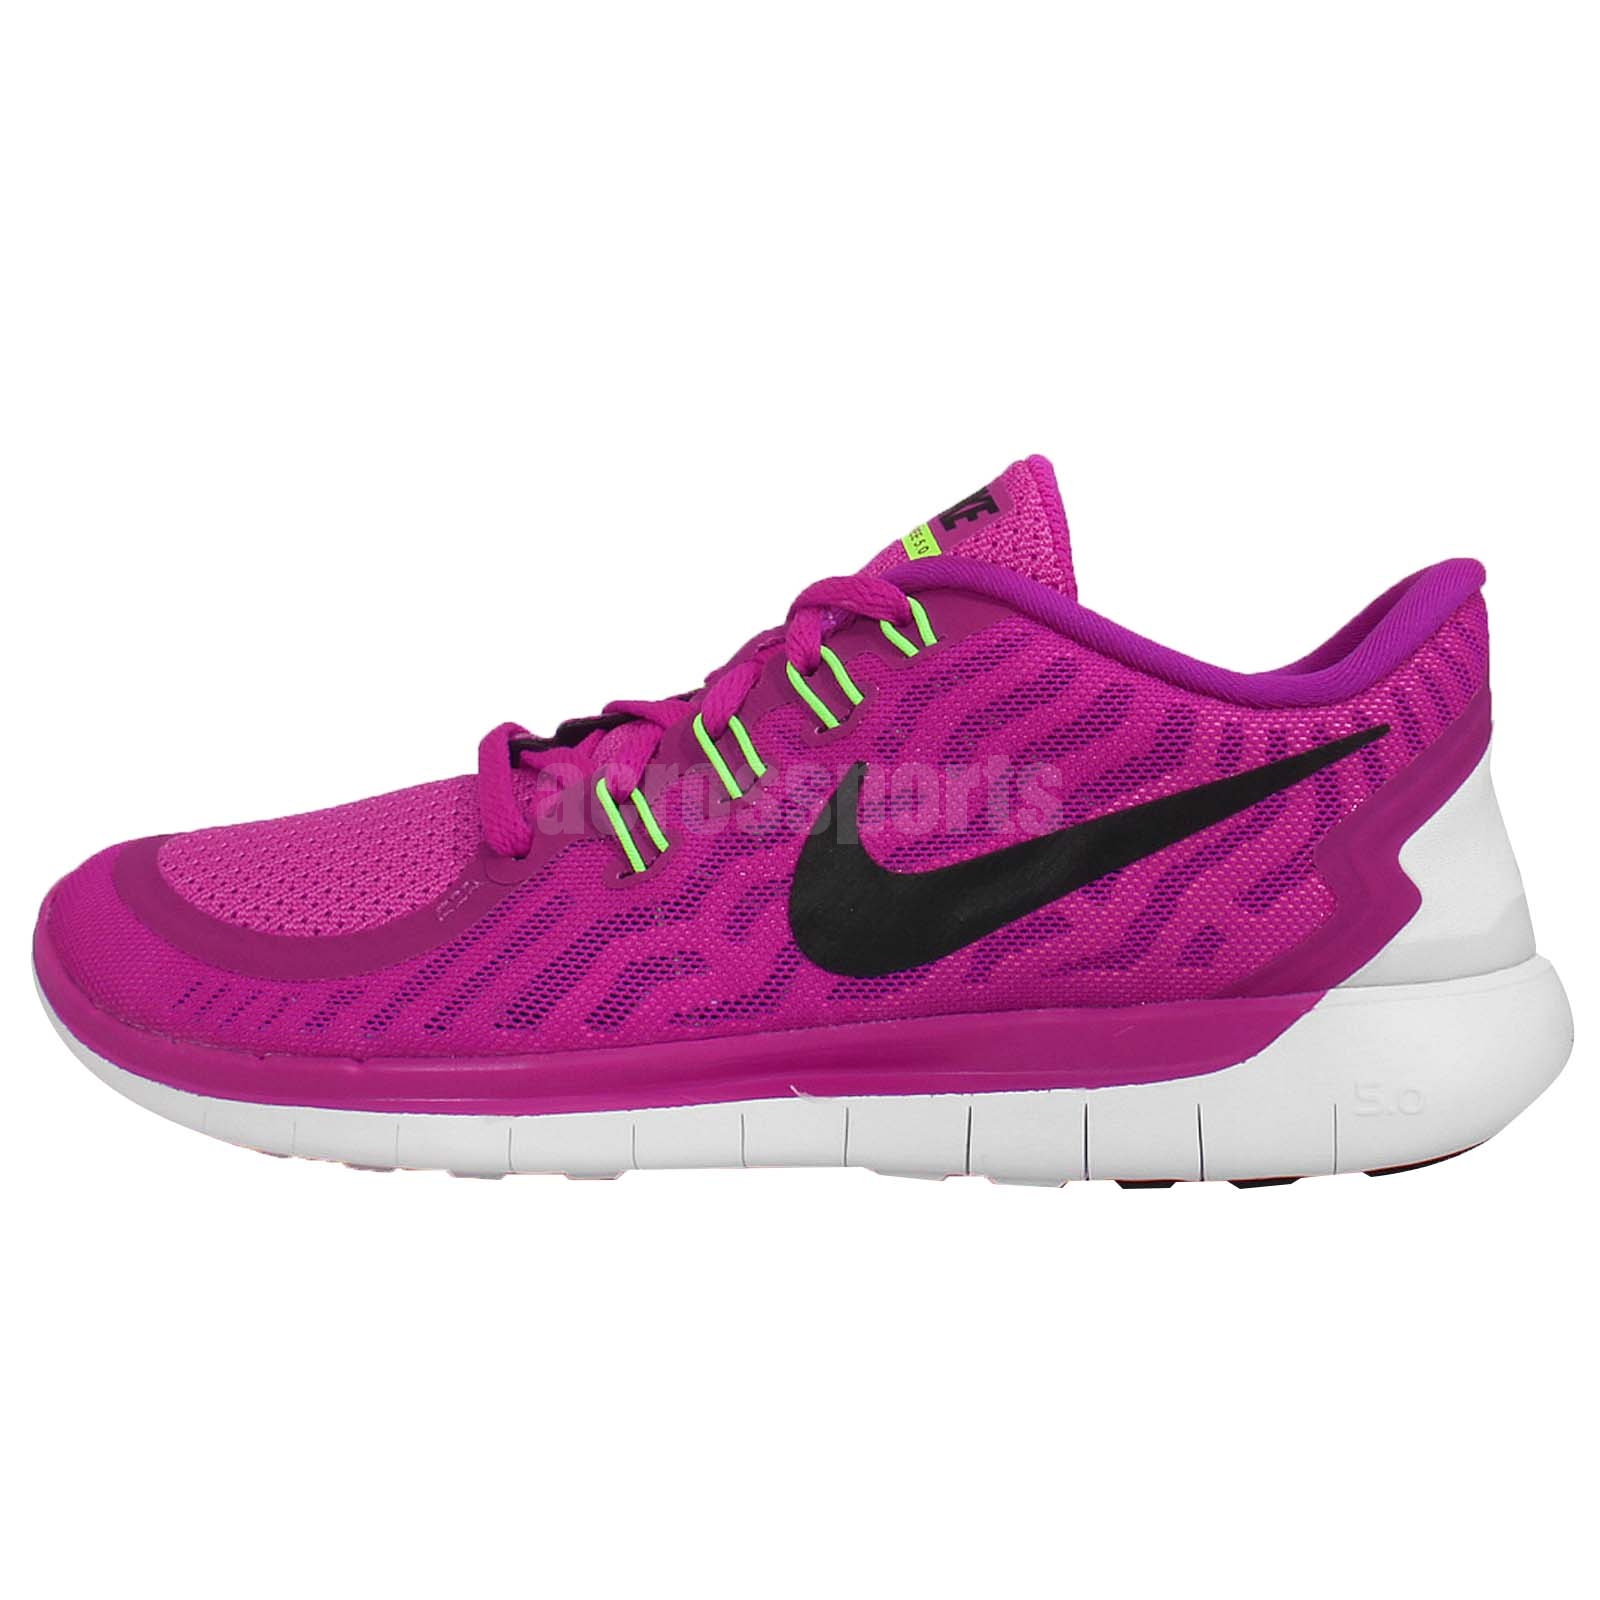 wmns nike free 5 0 purple black womens running shoes nike. Black Bedroom Furniture Sets. Home Design Ideas